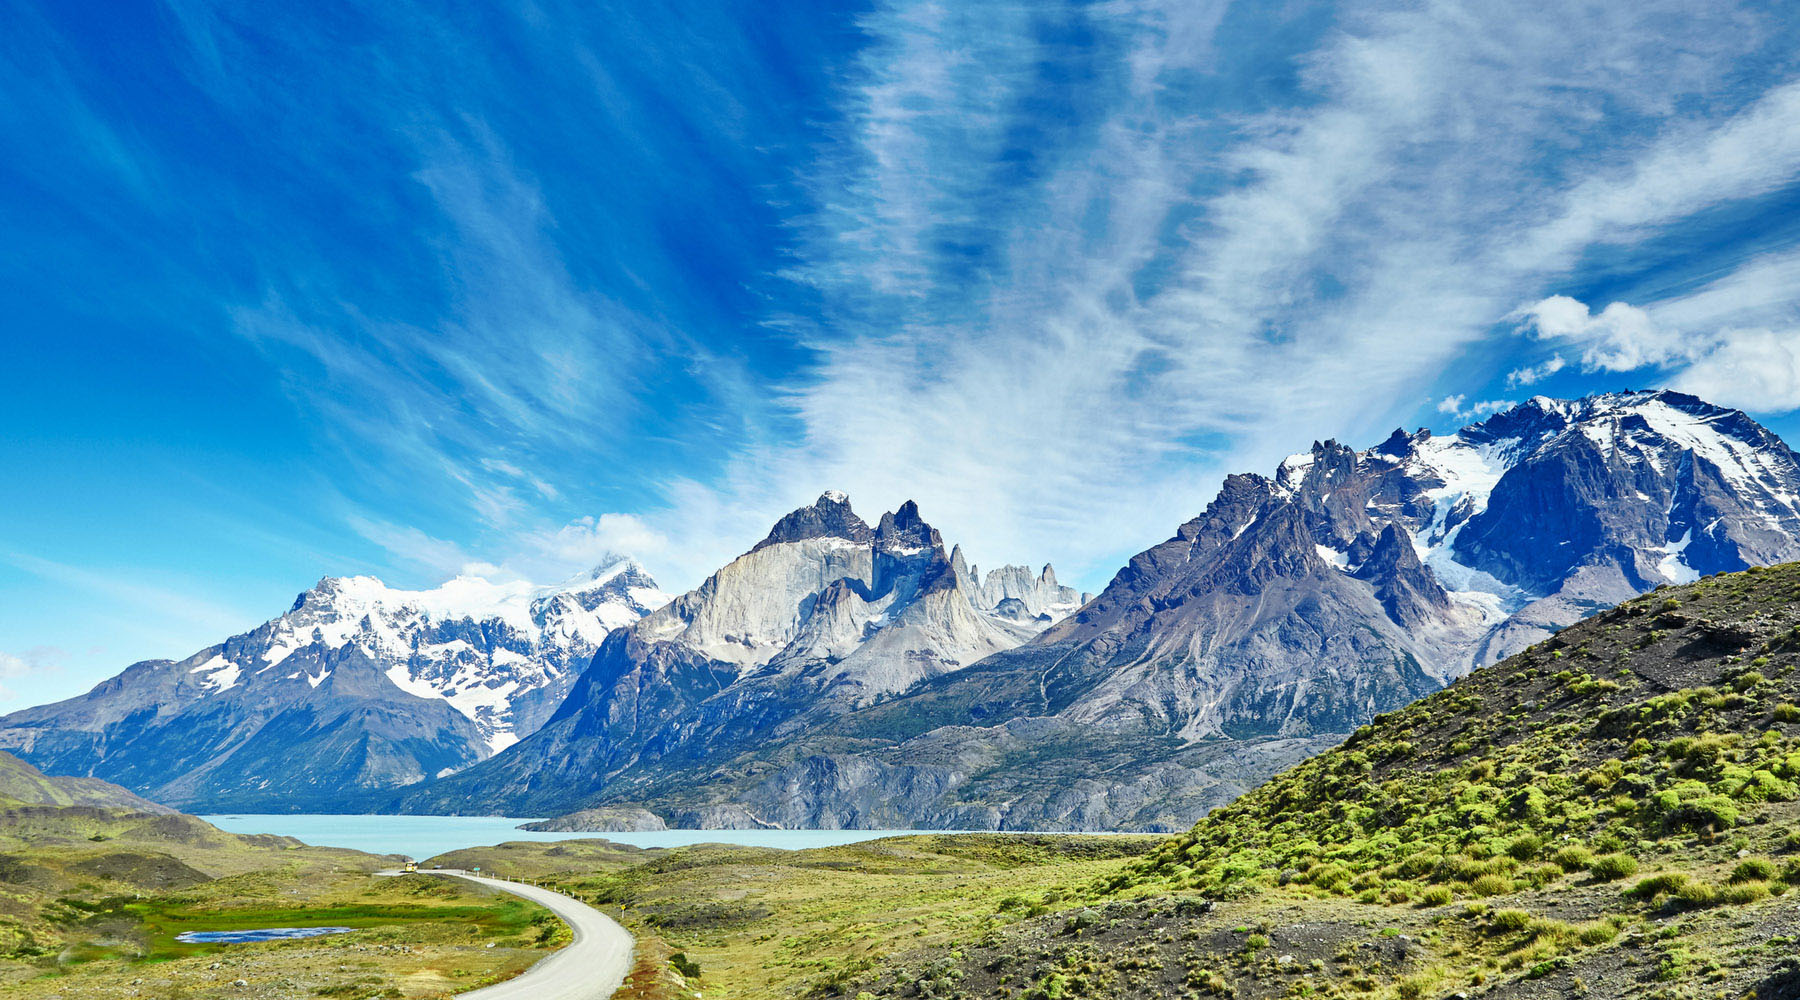 Mountains in Torres del Paine National Park in Chile.